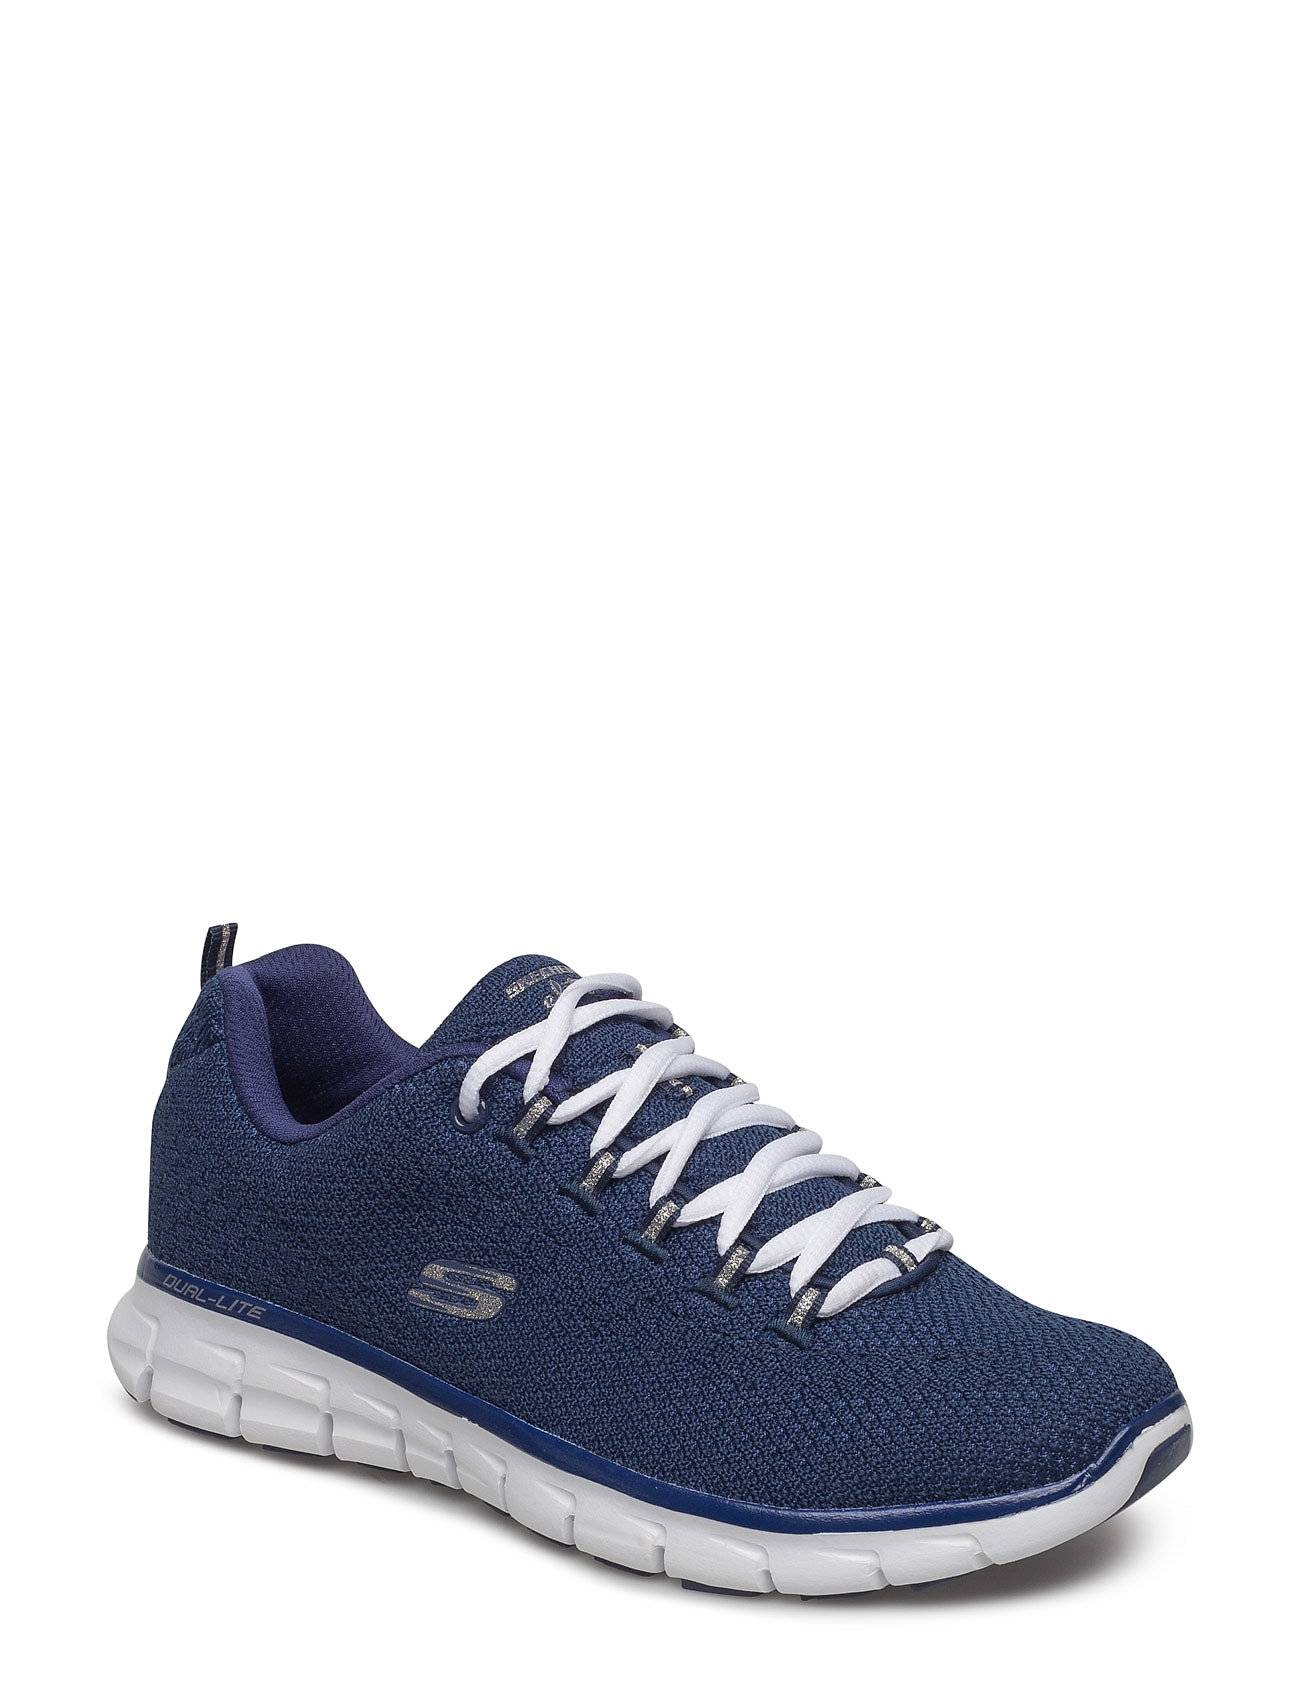 Skechers Womens Synergy - Safe & Sound